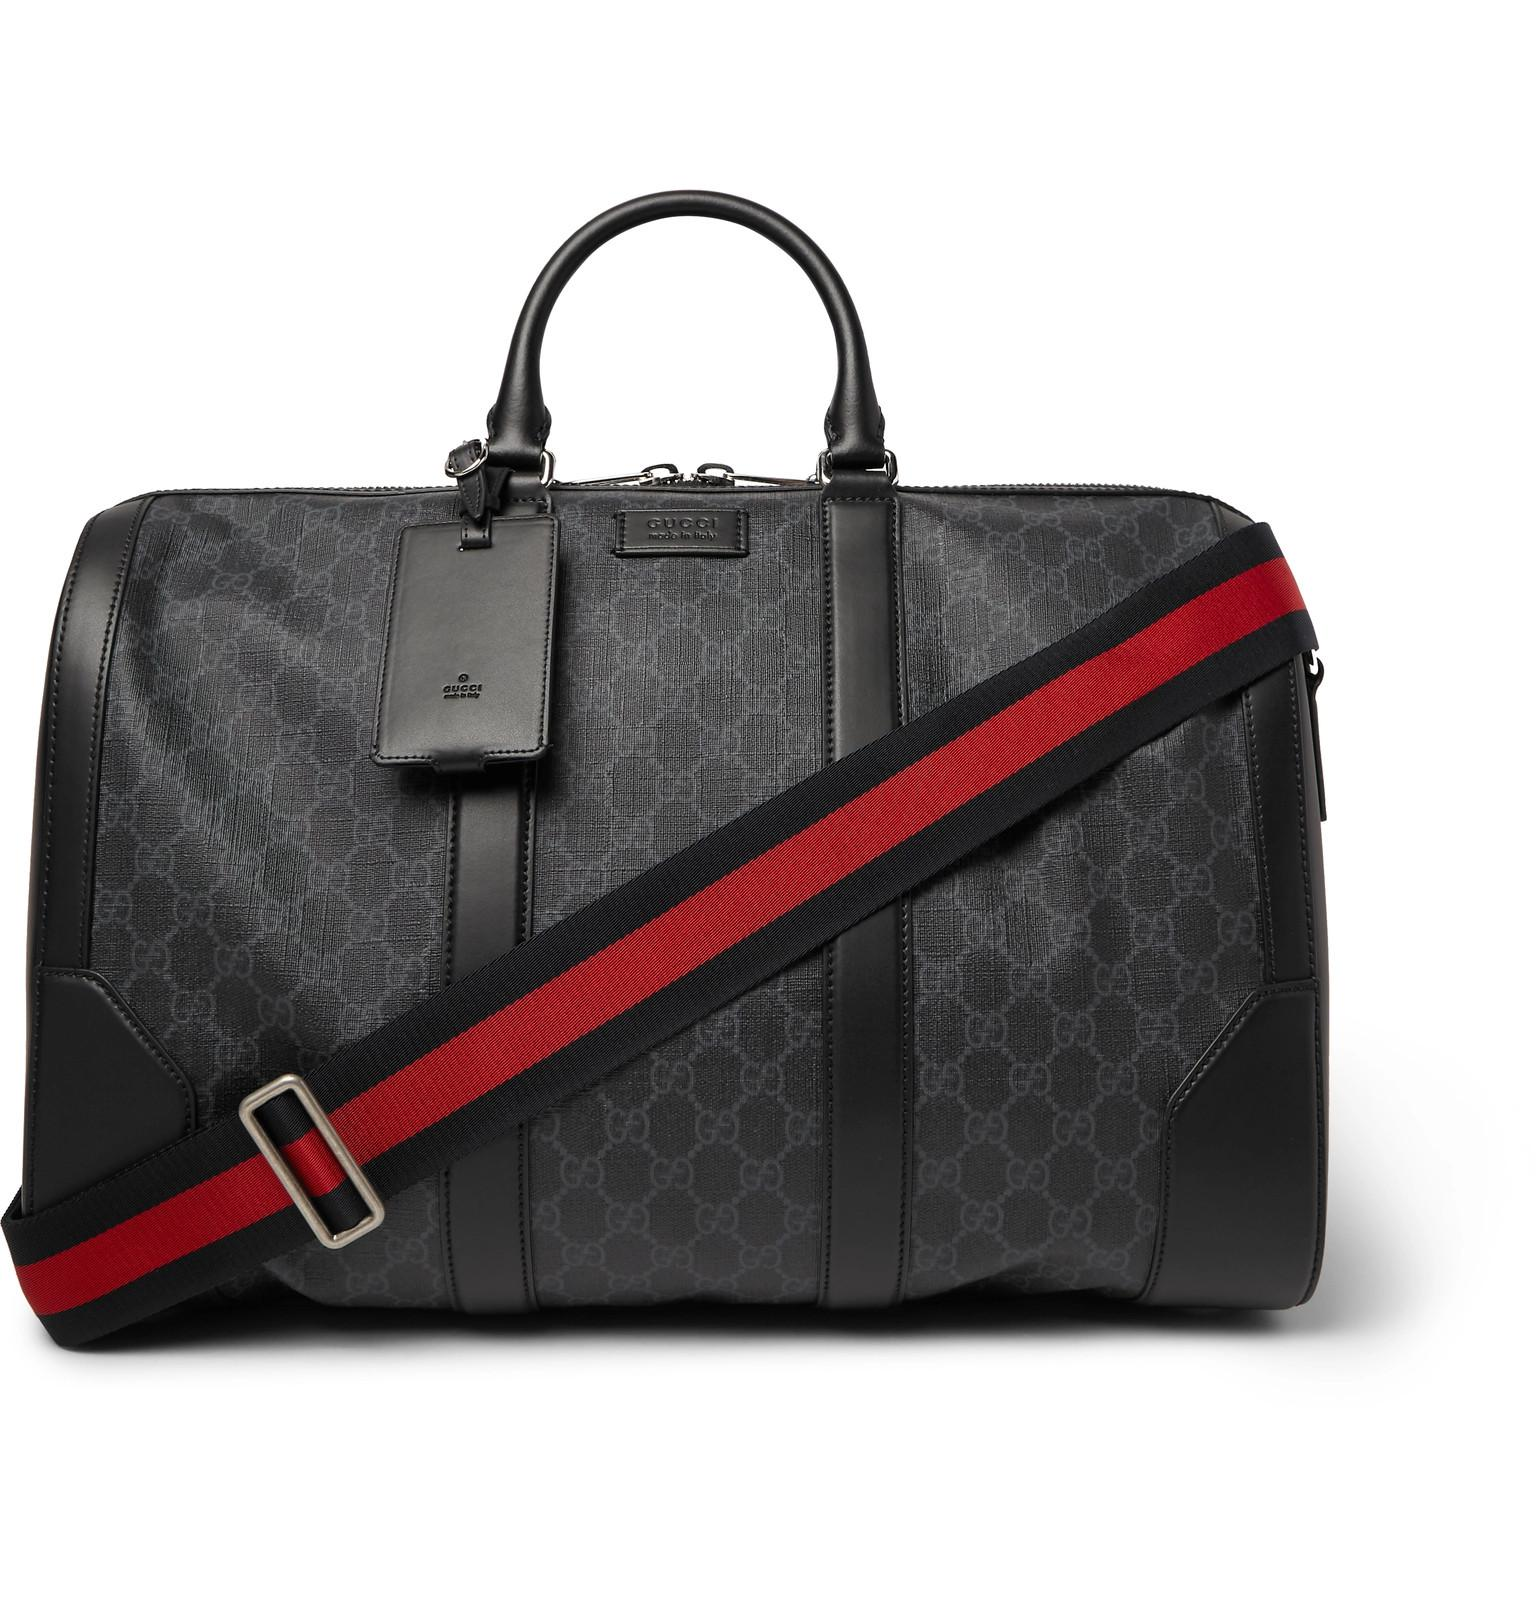 5a4e21ecfcdd Gucci Leather-trimmed Monogrammed Coated-canvas Holdall in Black for ...